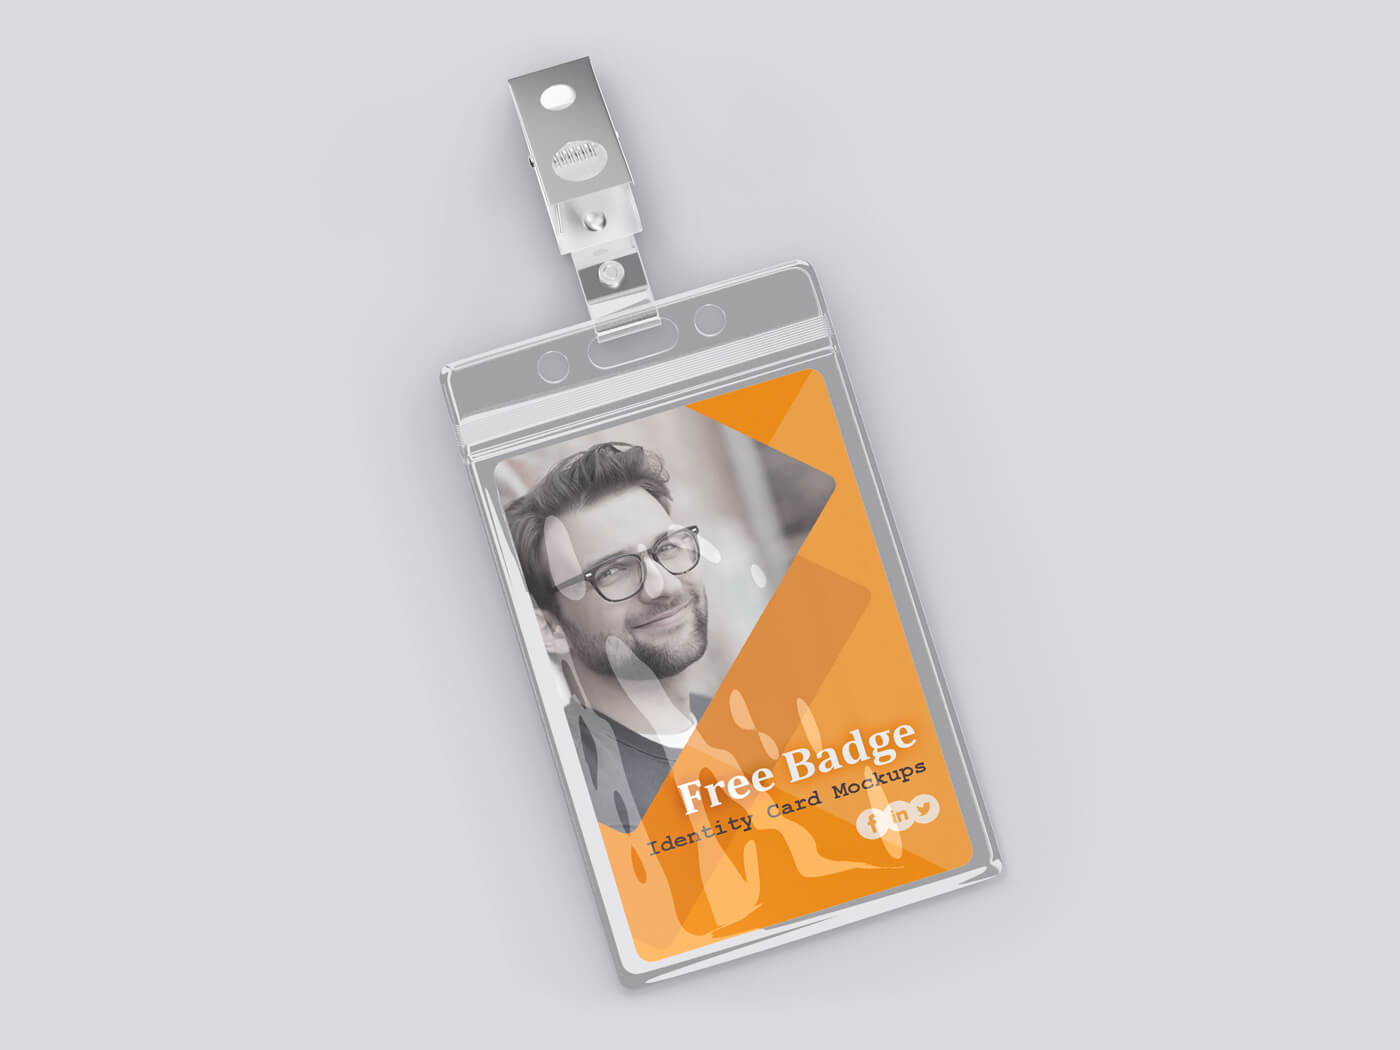 Badge Identity Card Mockup 03